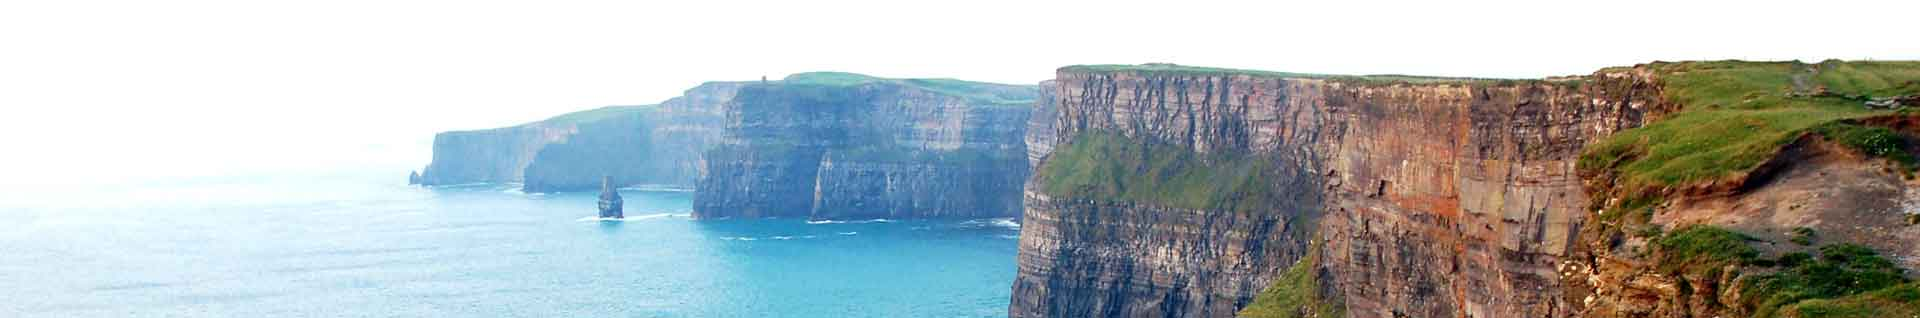 cliffs_of_moher_s2.jpg